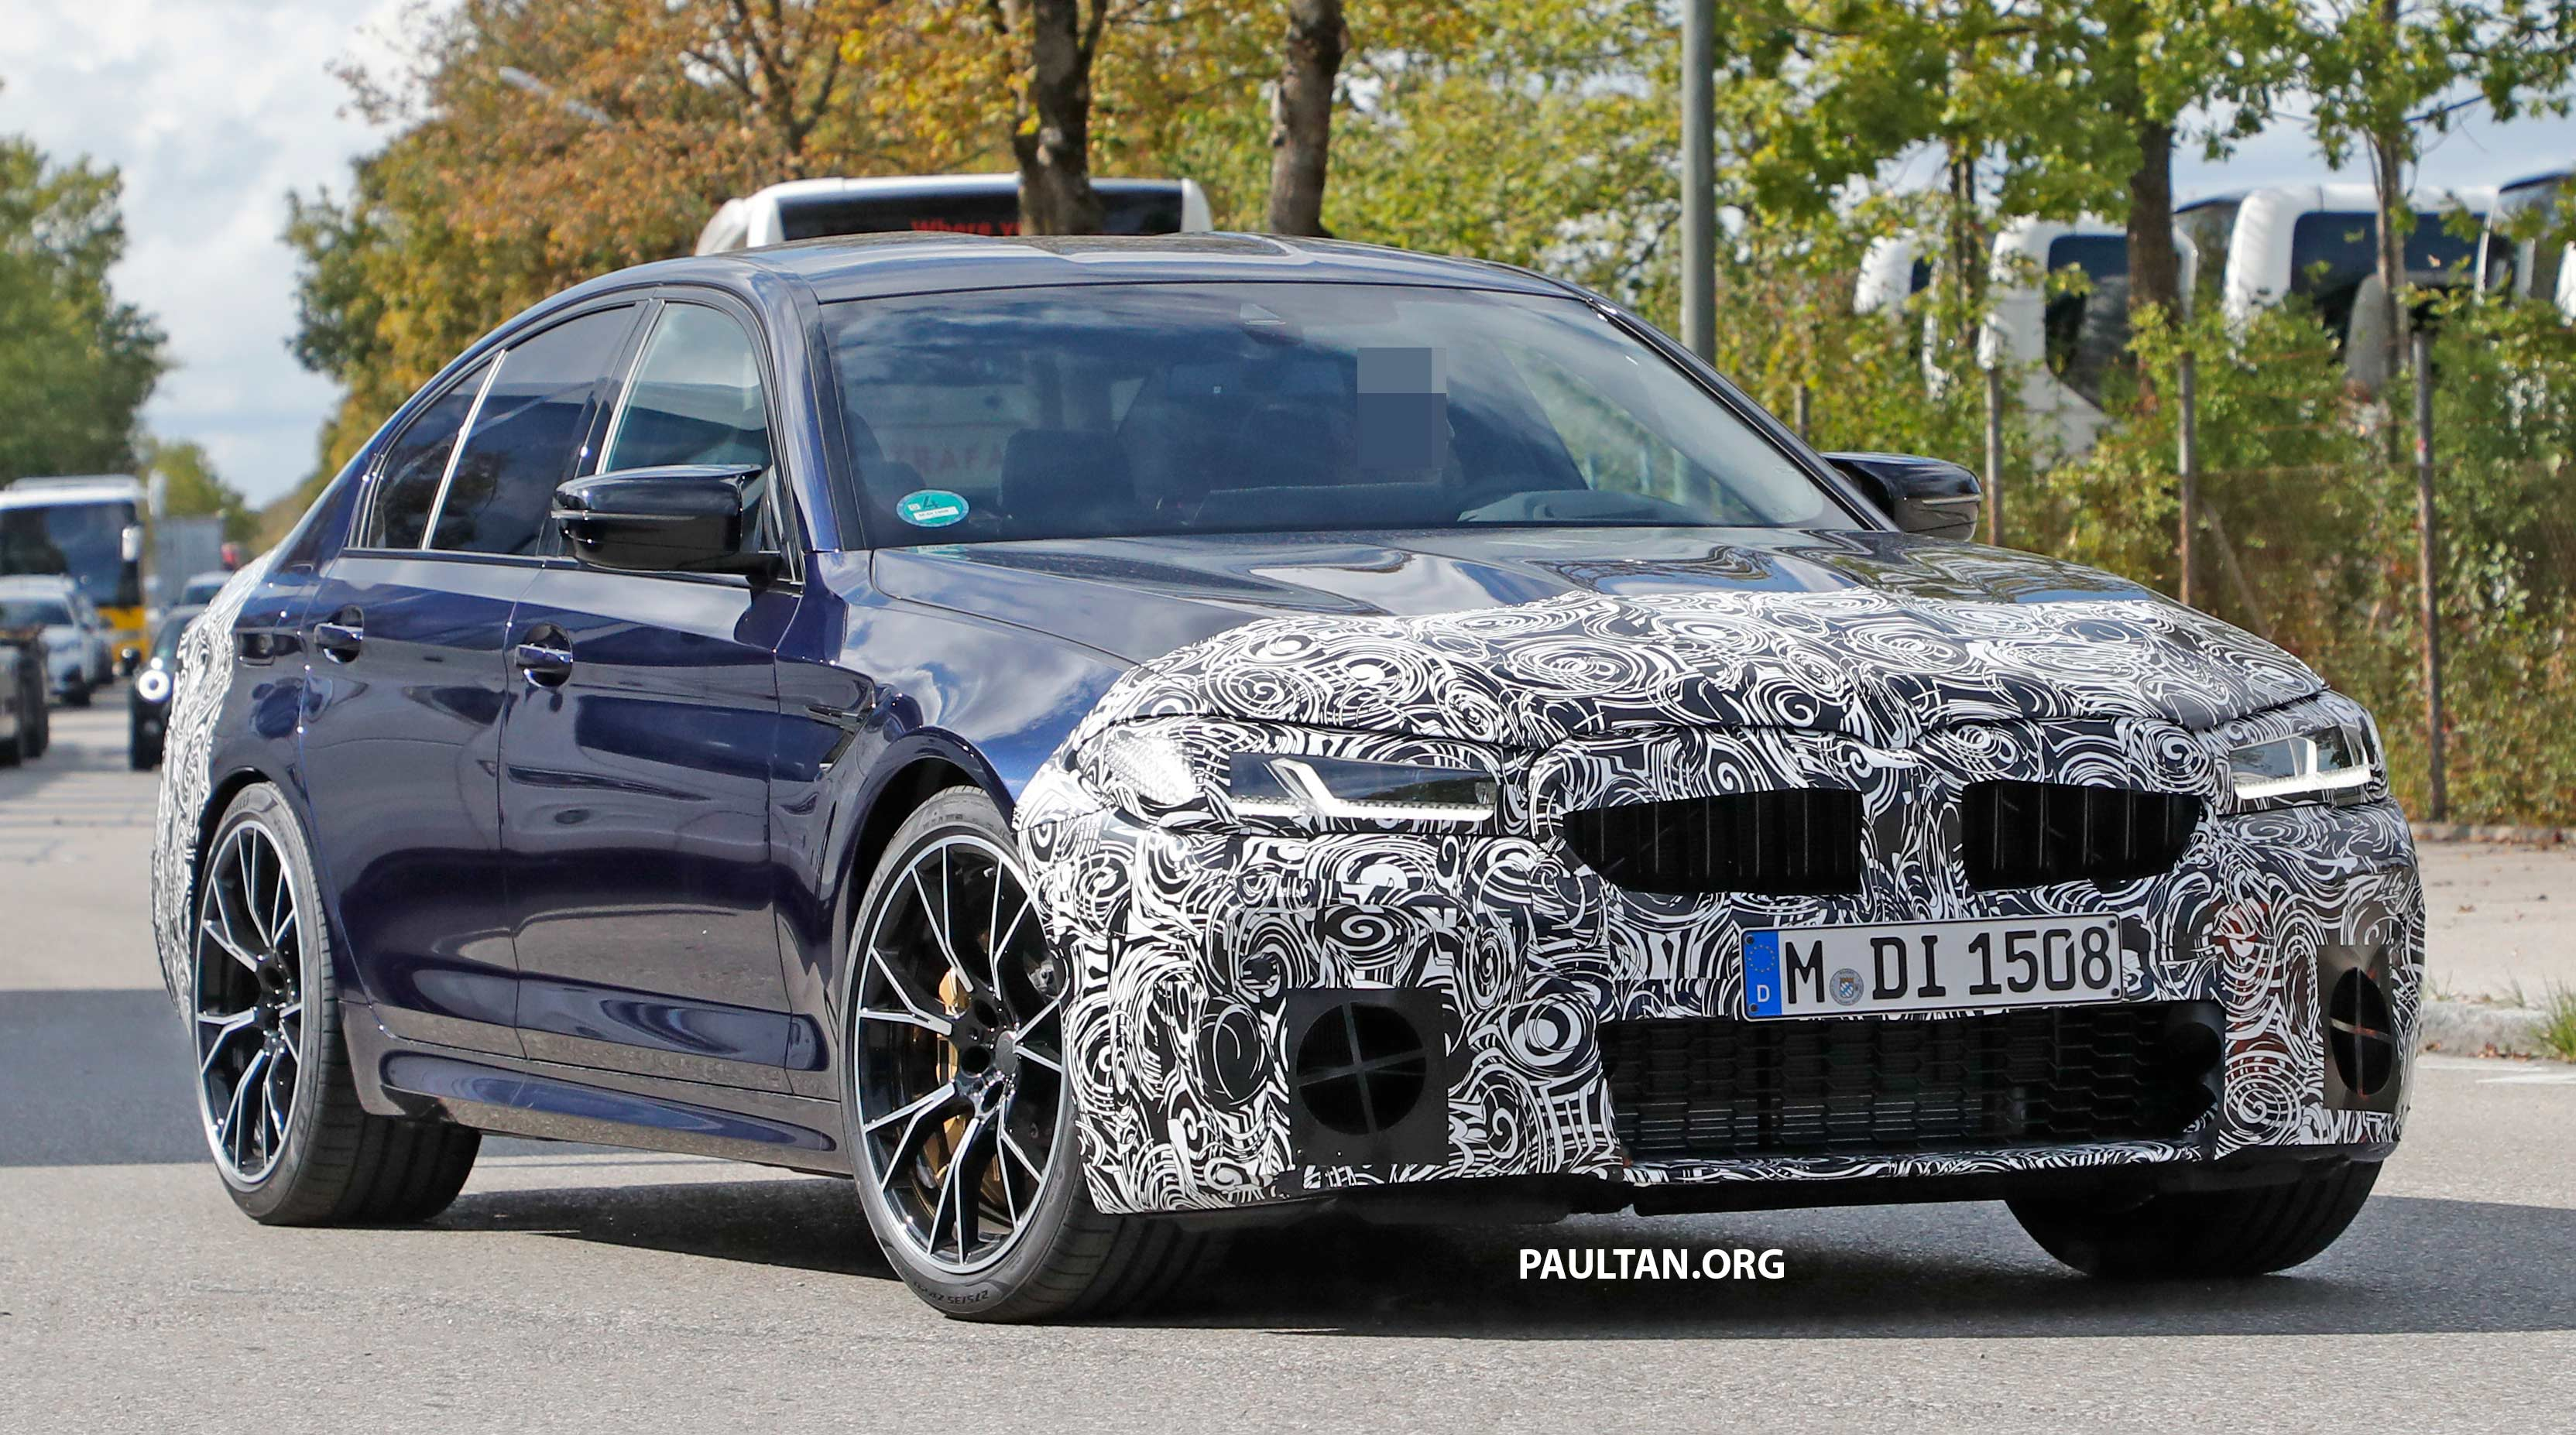 Spied F90 Bmw M5 Lci Revised Engine Interior Trim Paultan Org